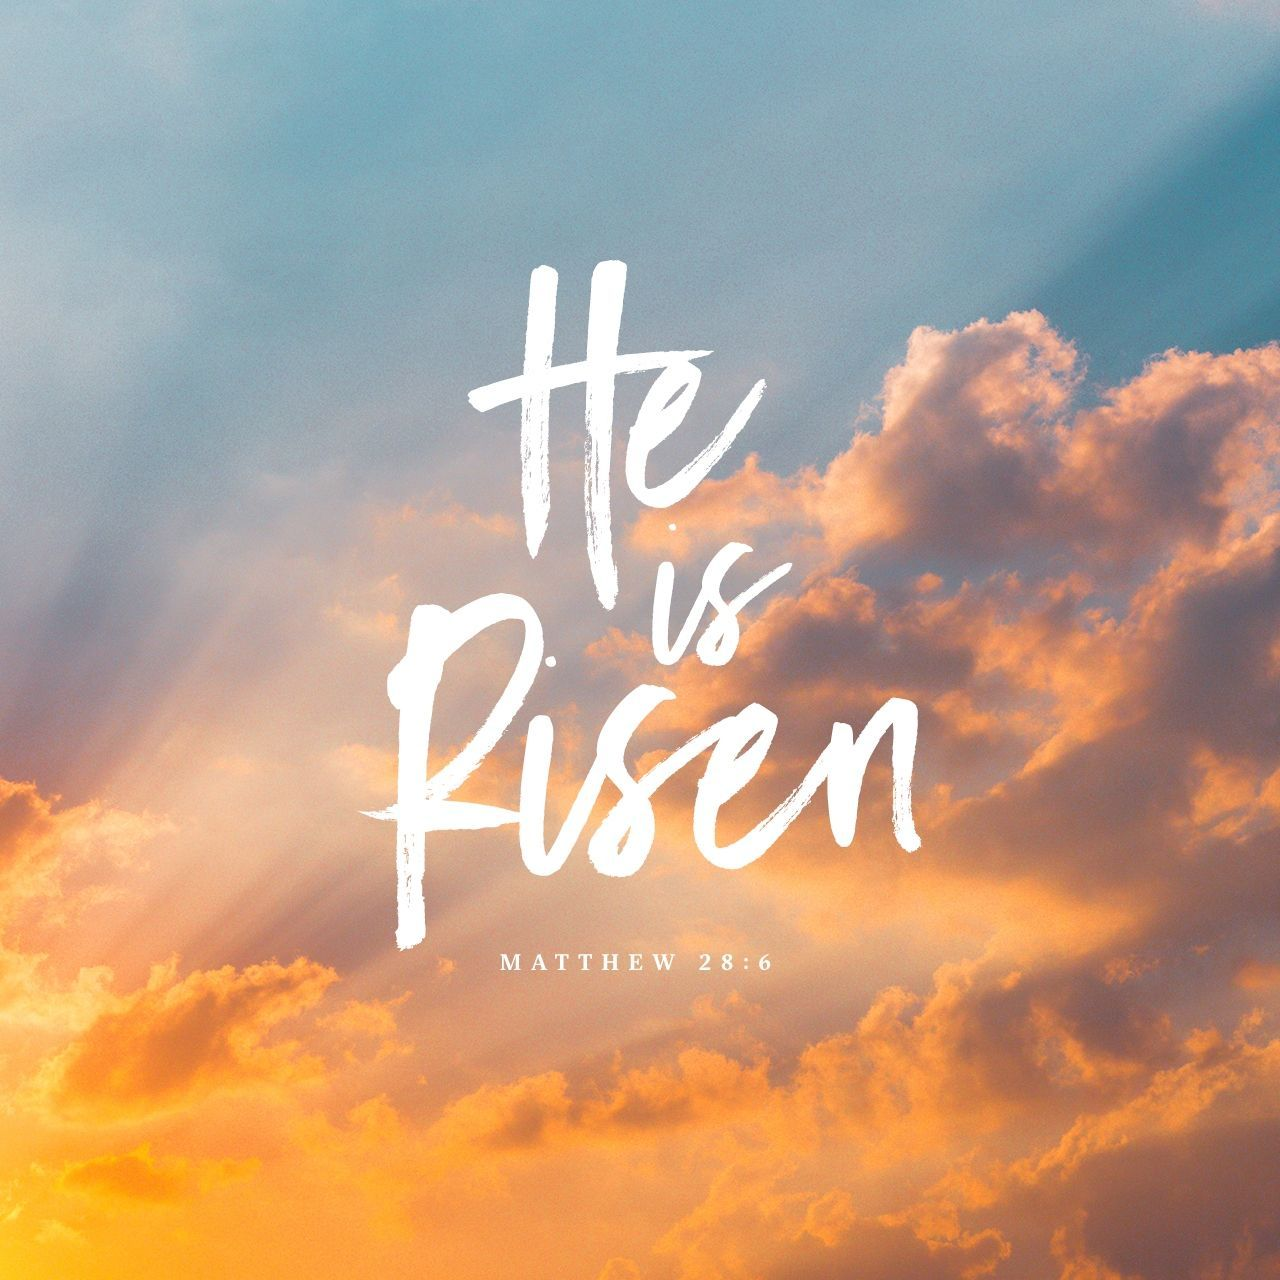 He is risen! | Jesus is alive, Bible, Matthew 28